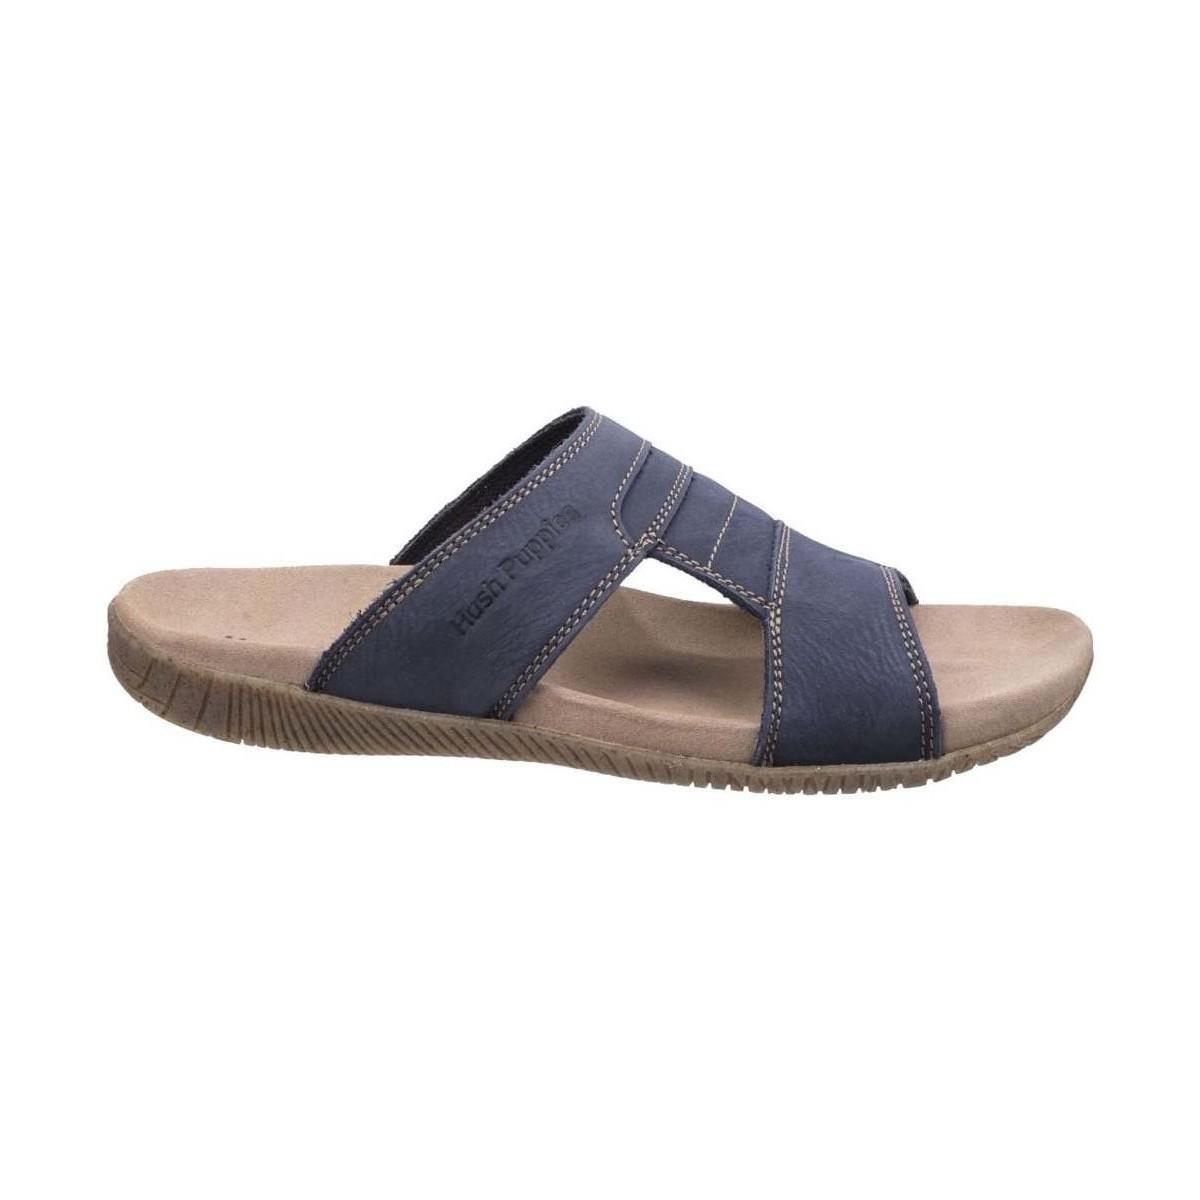 cc060cd0be7 Hush Puppies - Mutt Slider Mens Sandals Men s Sandals In Blue for Men -  Lyst. View fullscreen